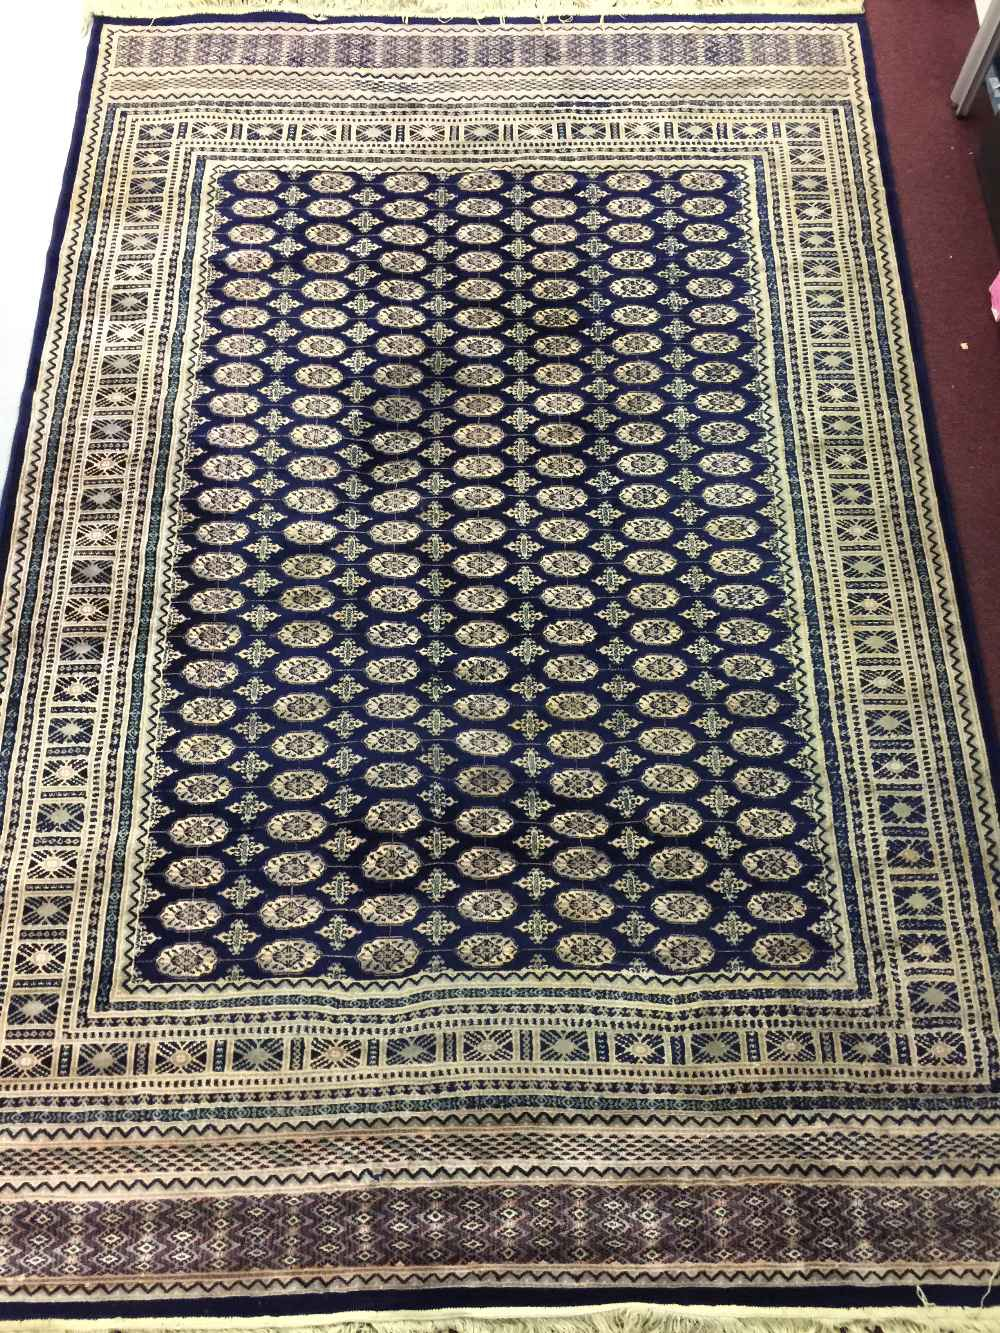 Lot 38 - 20th cent. Machine made Turkish rug (with lead seal). Dark blue ground, nine borders, central